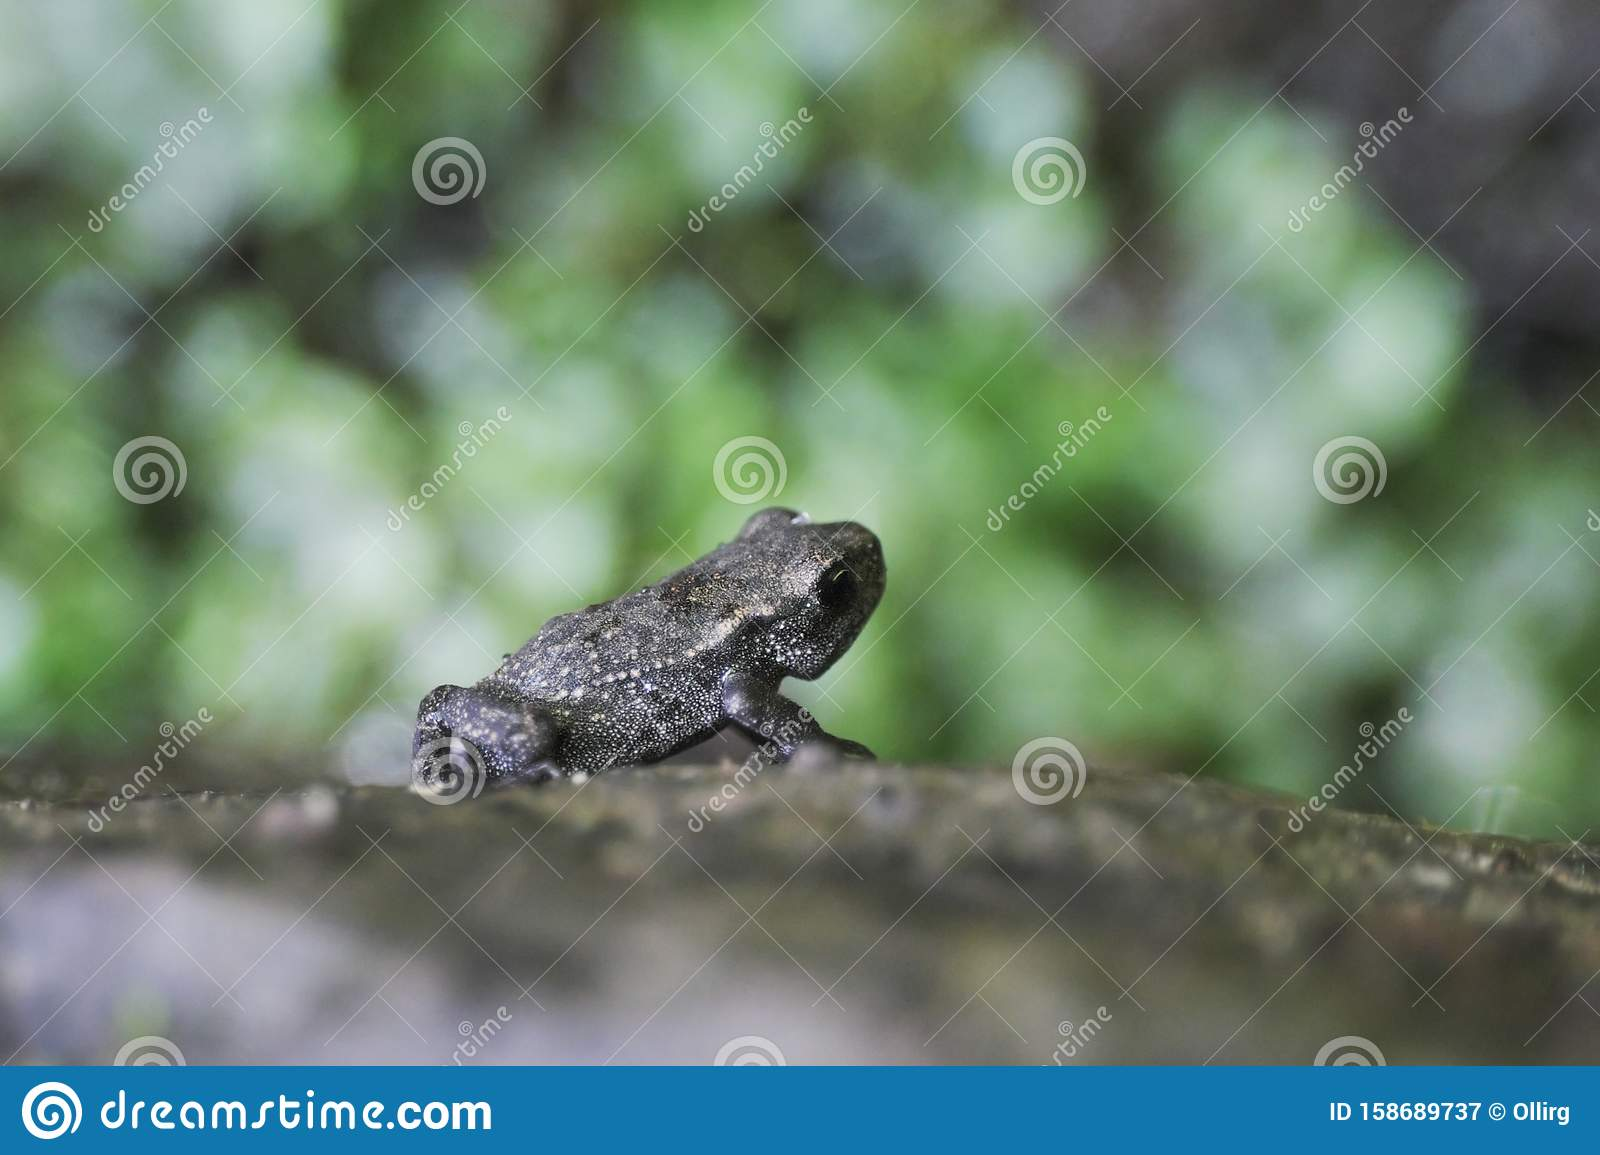 Tiny Young Toad